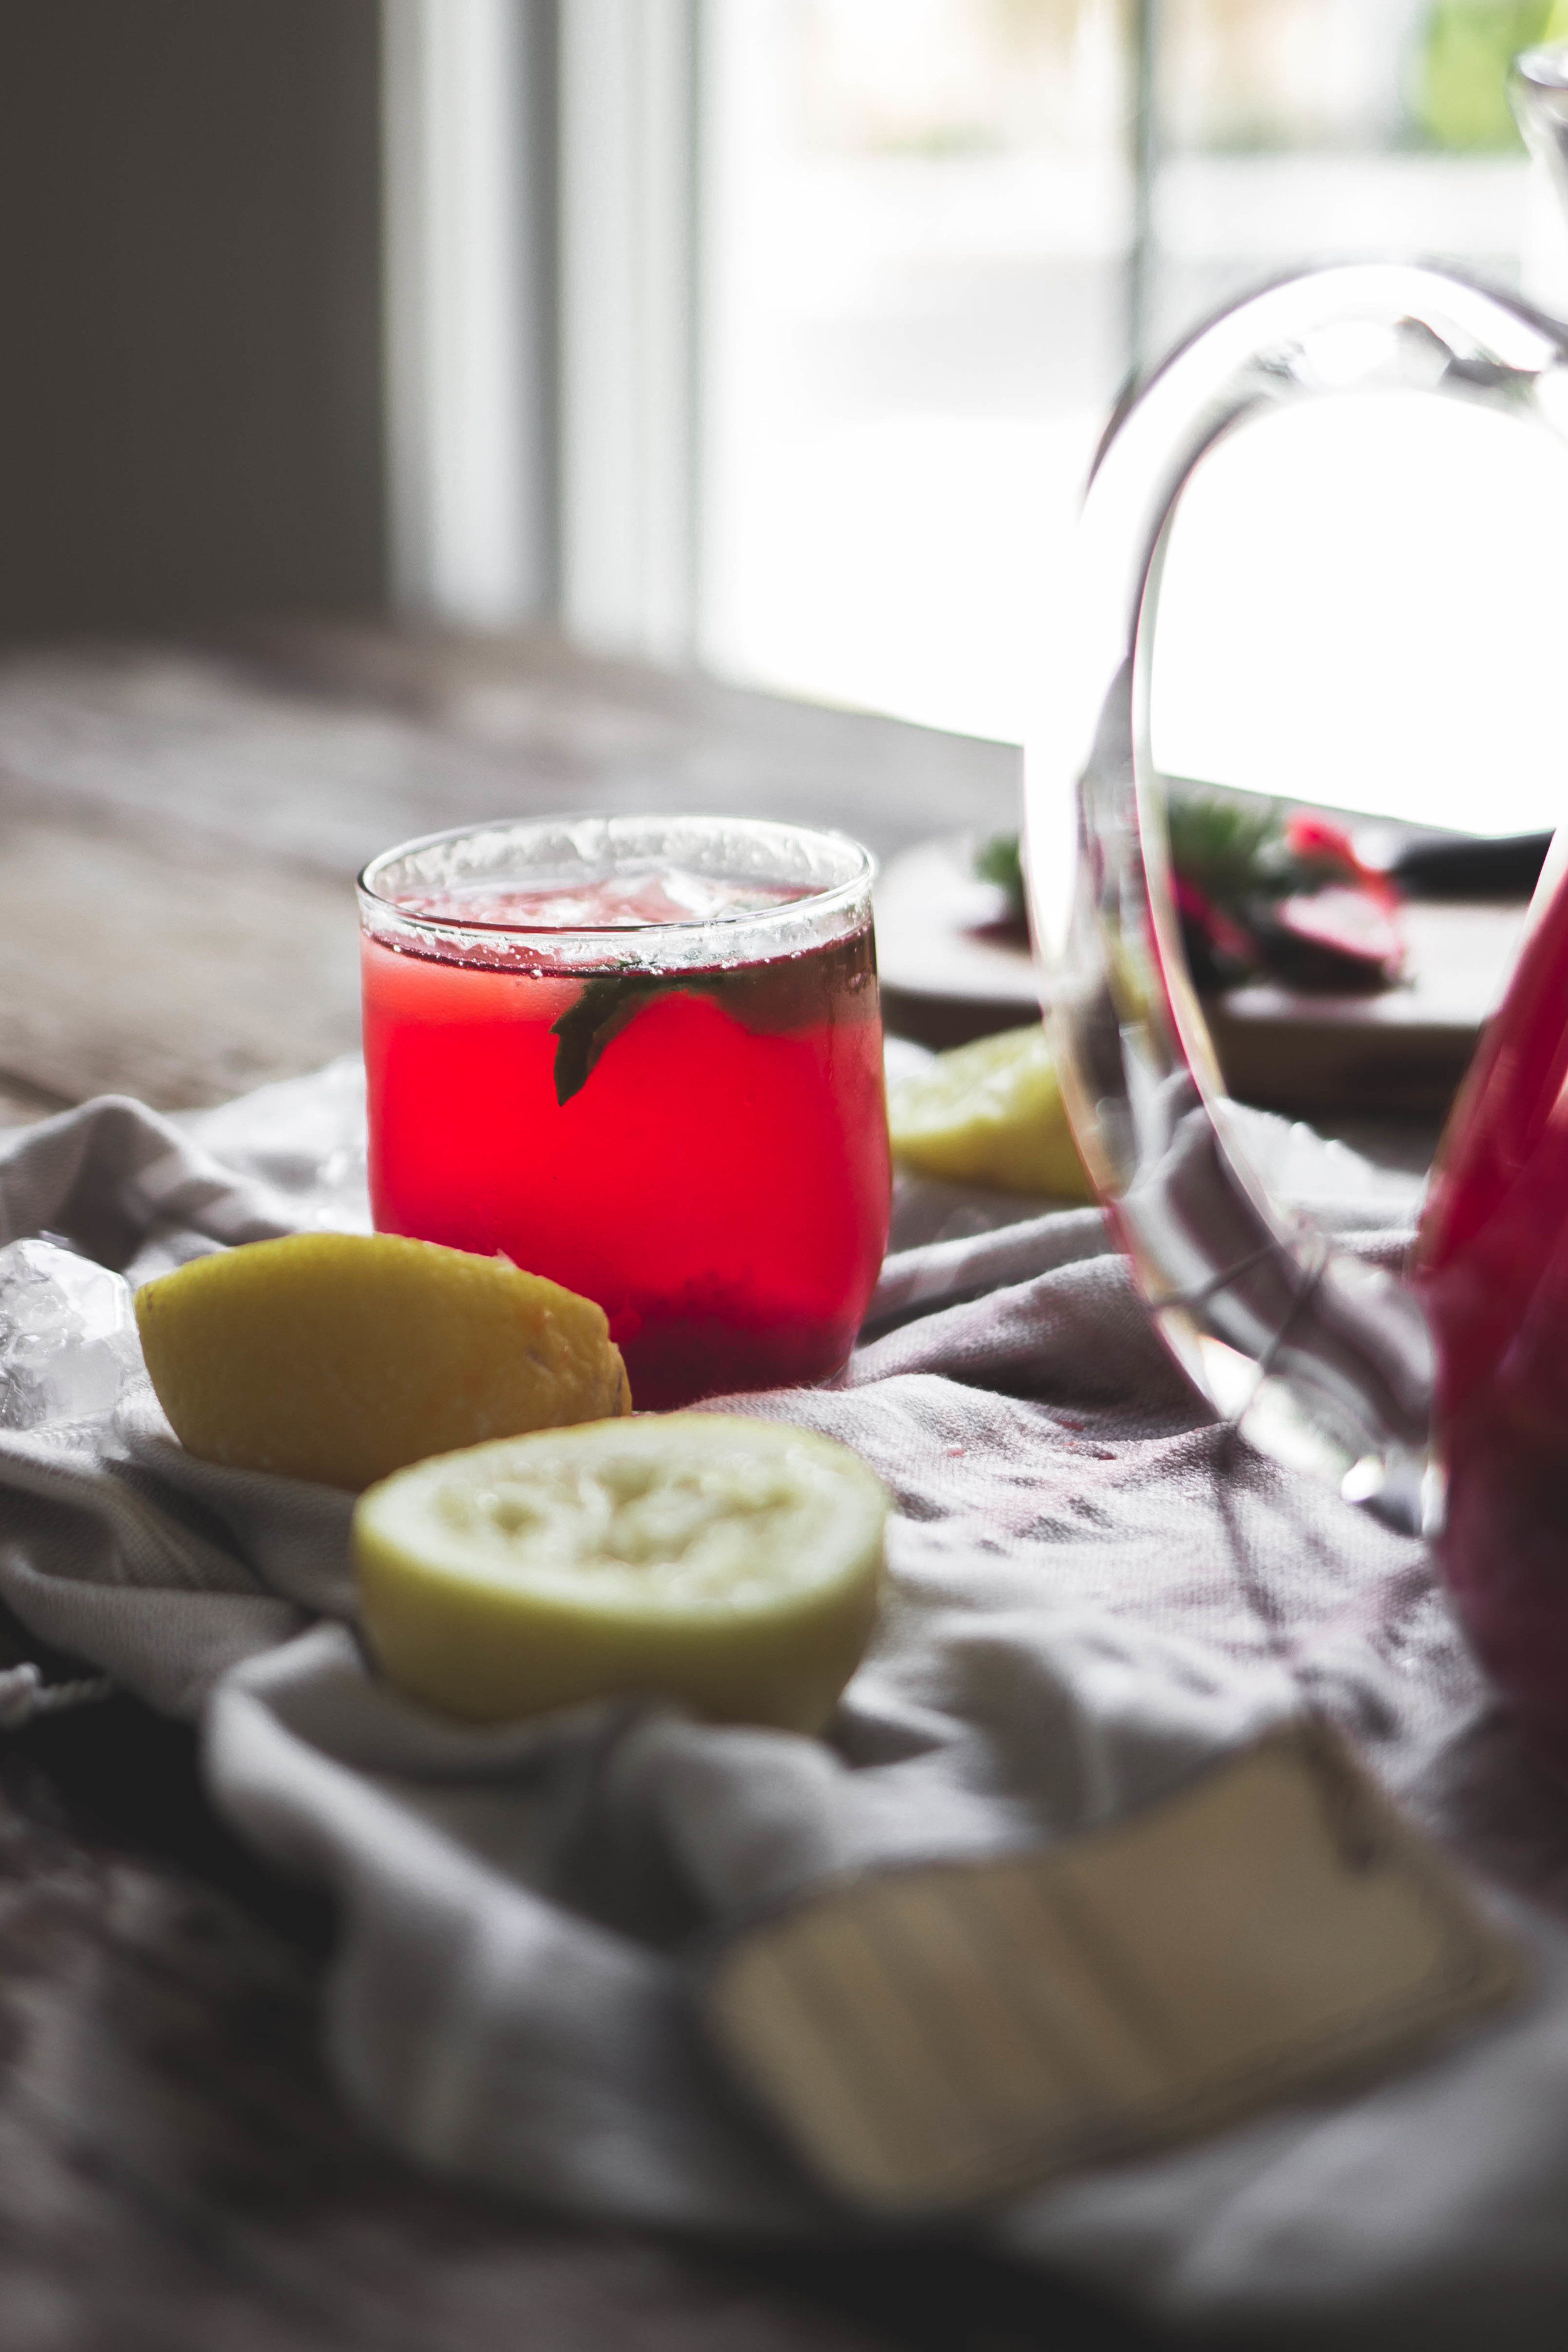 homemade strawberry mint lemonade recipe, like Red Robbin | from scratch, mostly